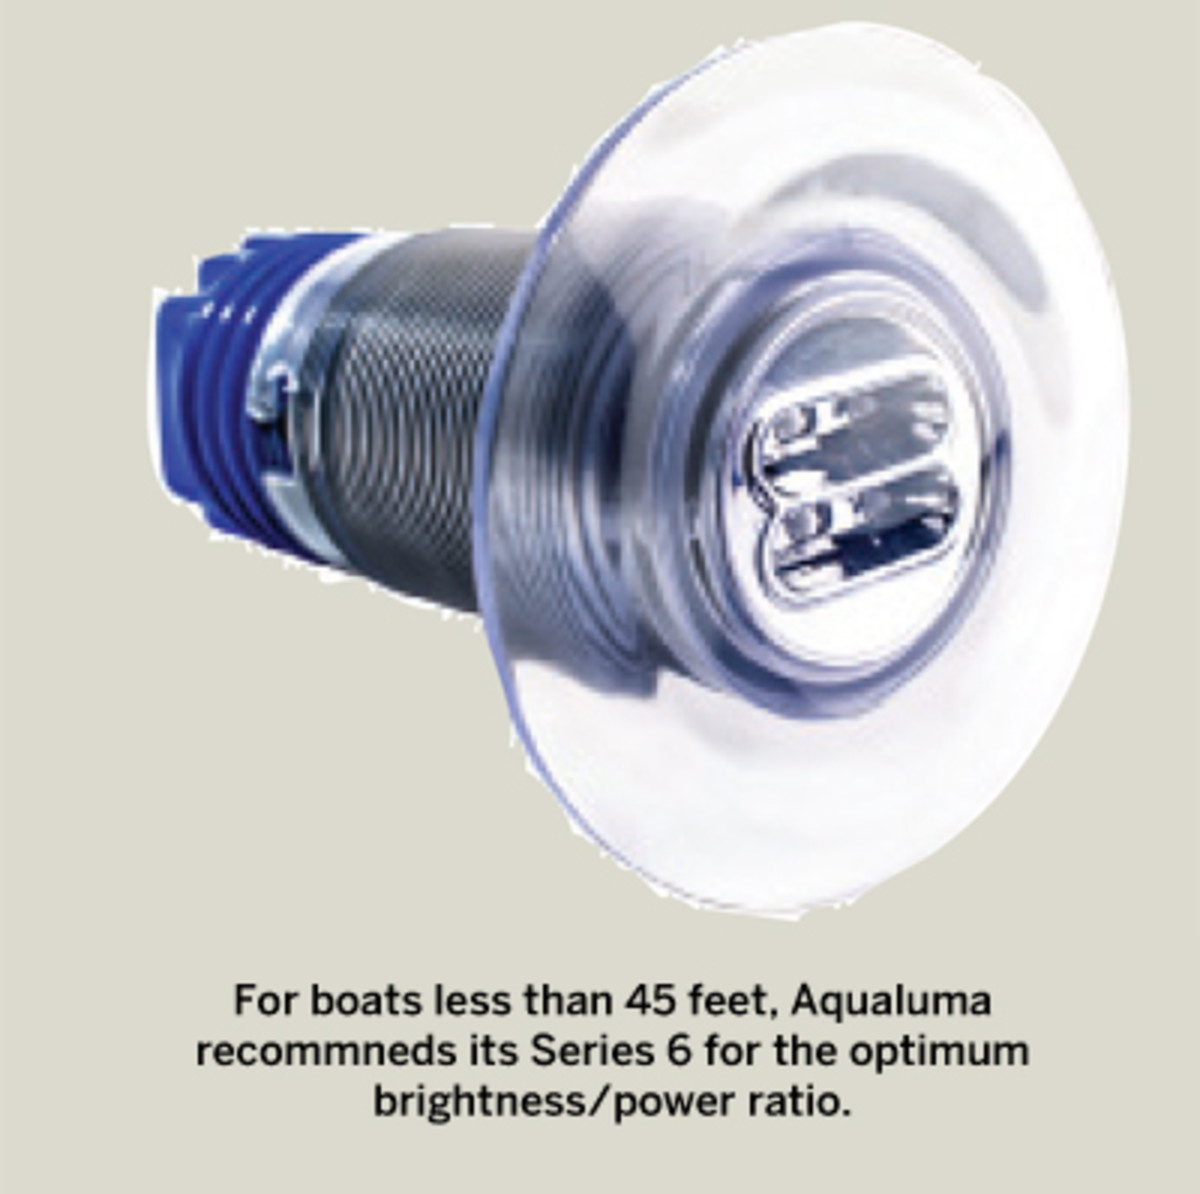 Series 6 LED from Aqualuma